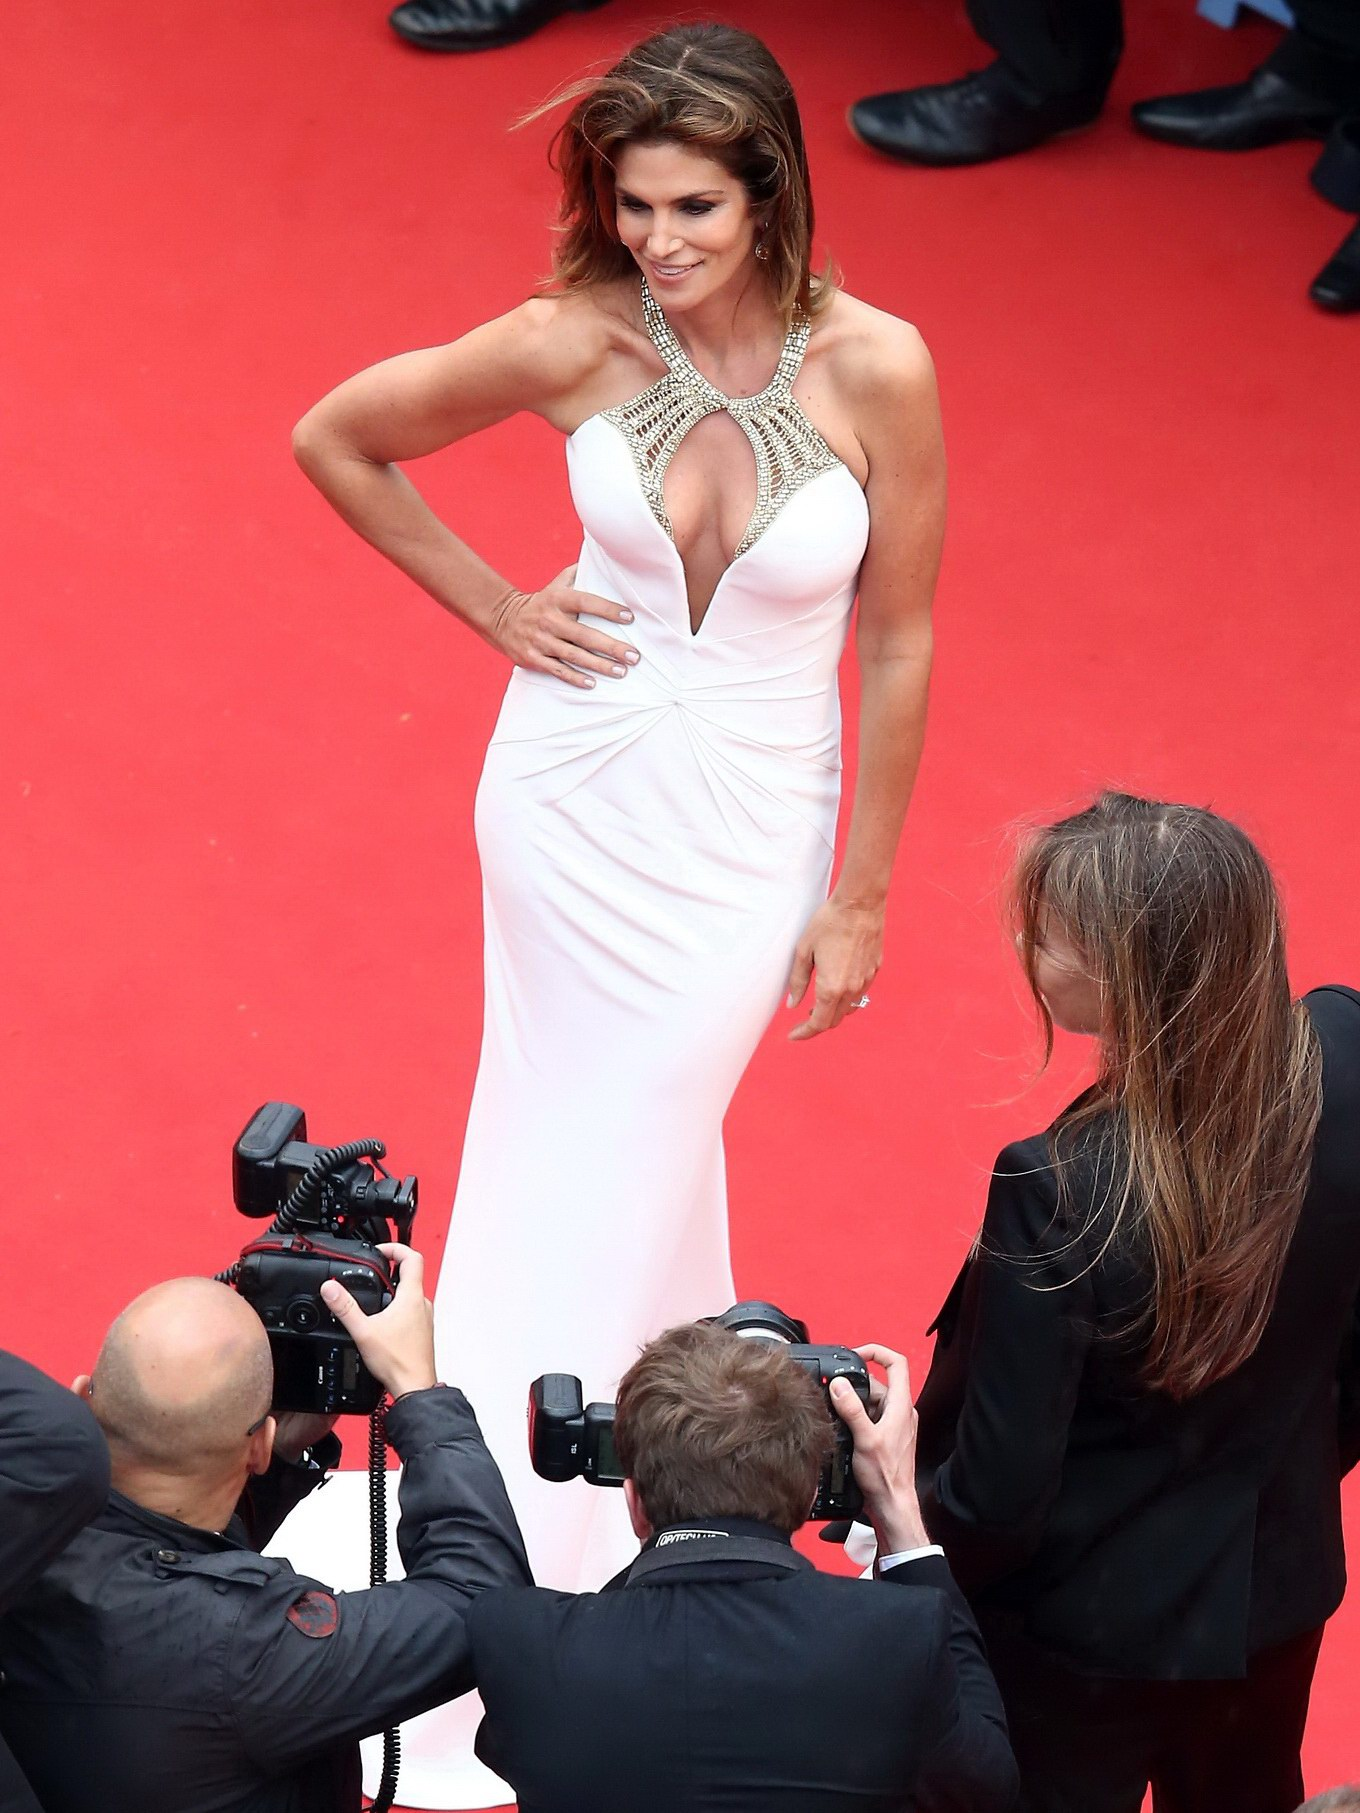 ... huge cleavage at the 66th annual Cannes Film Festival opening ceremony: www.celeb-for-free.com/pics/celeb4542/cindy_crawford_horny_freeones...